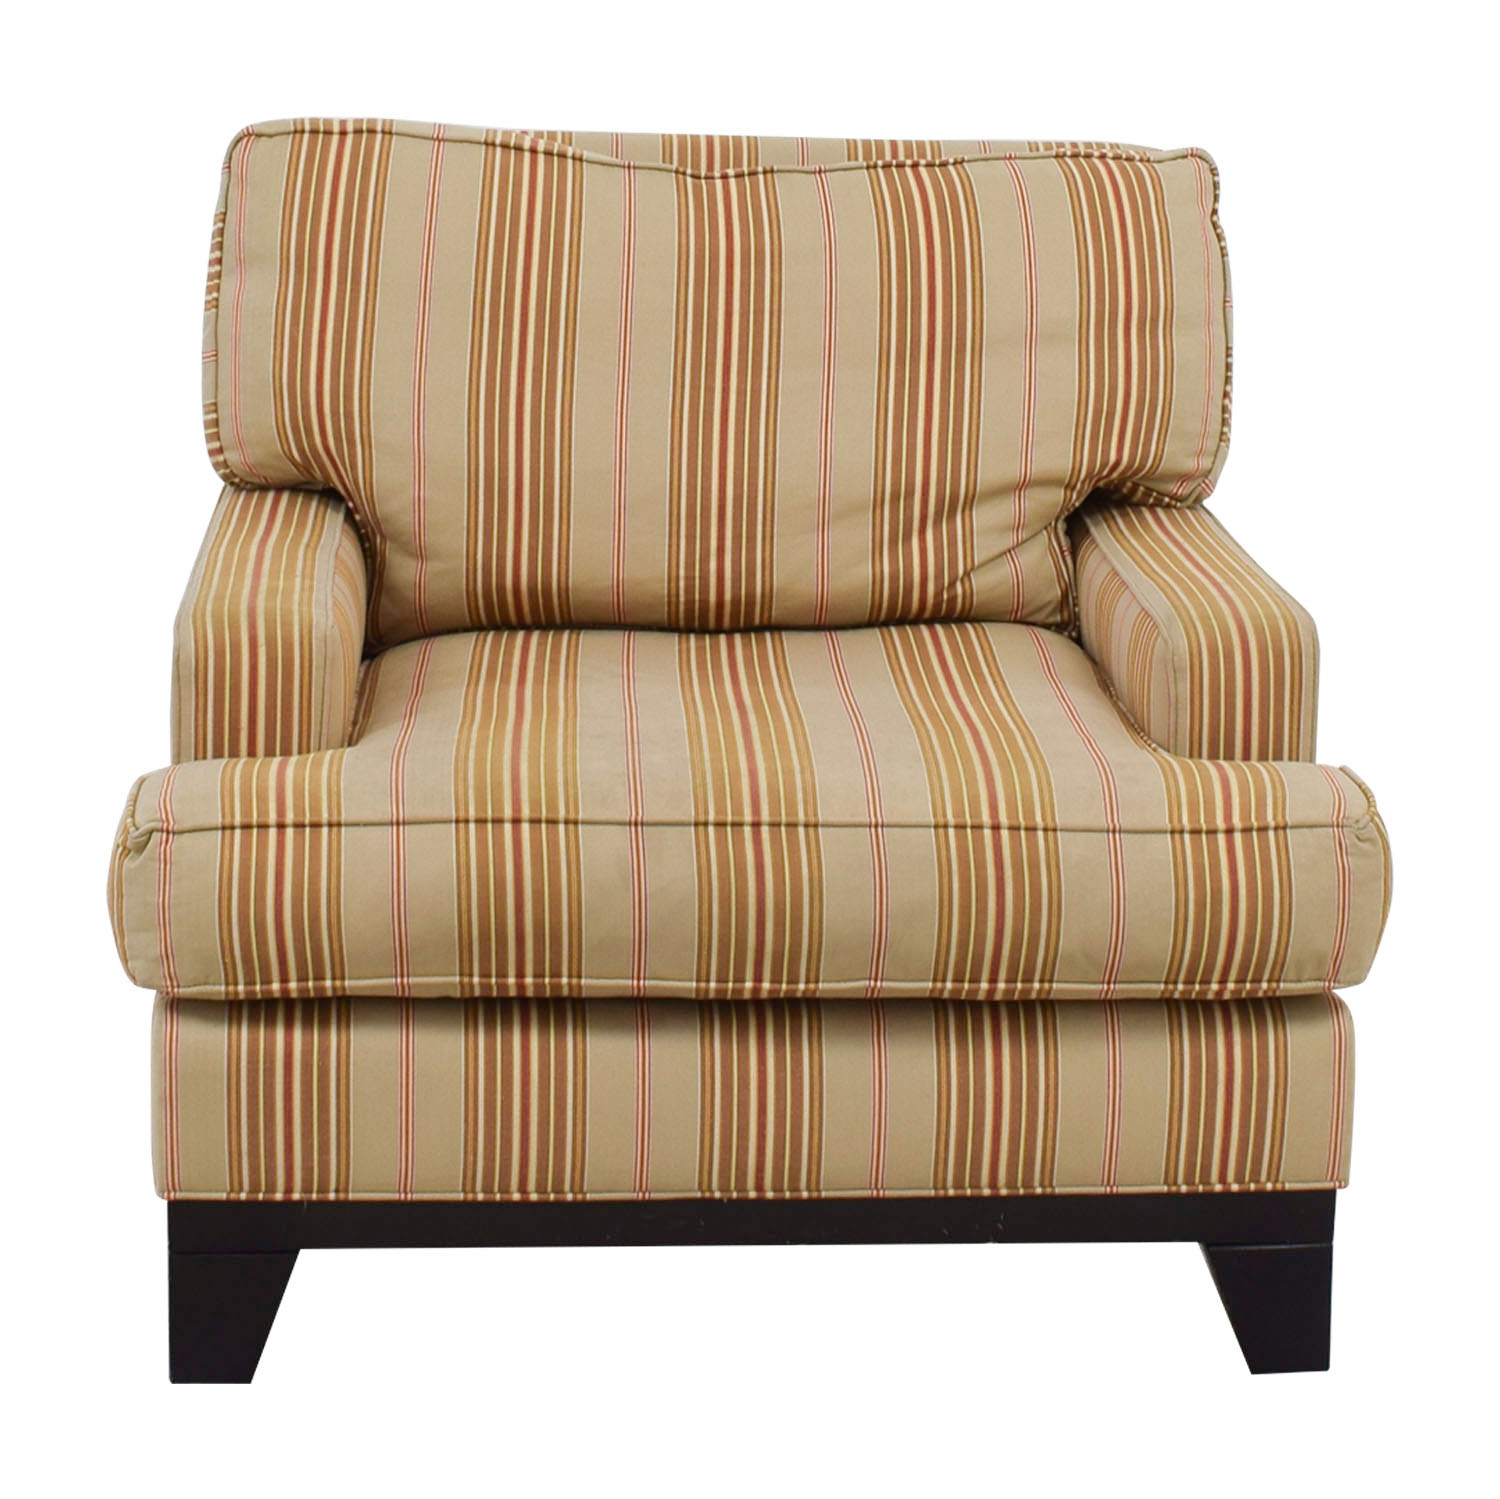 Ethan Allen Ethan Allen Beige Gold and Red Striped Arm Chair dimensions